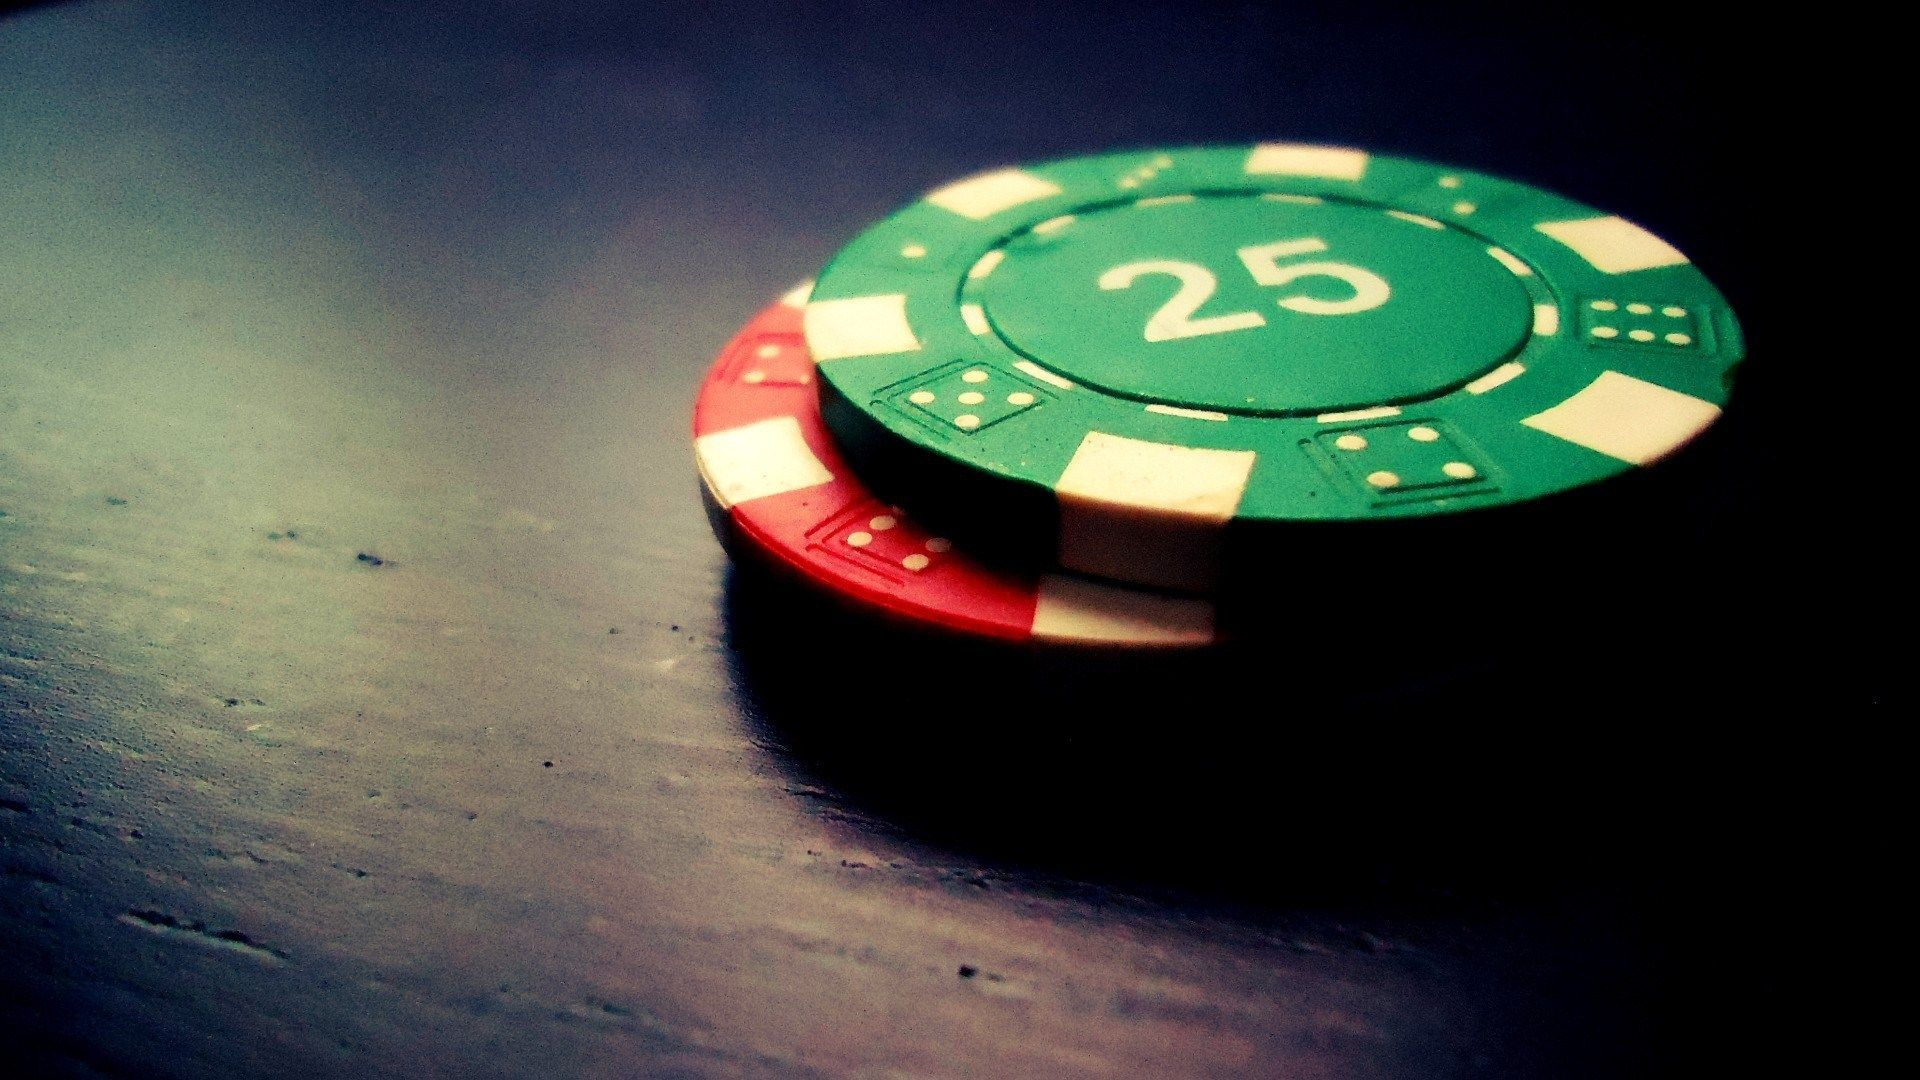 The World Series Of Poker Is Online This Year. Some Fear Cheaters Could Take Advantage